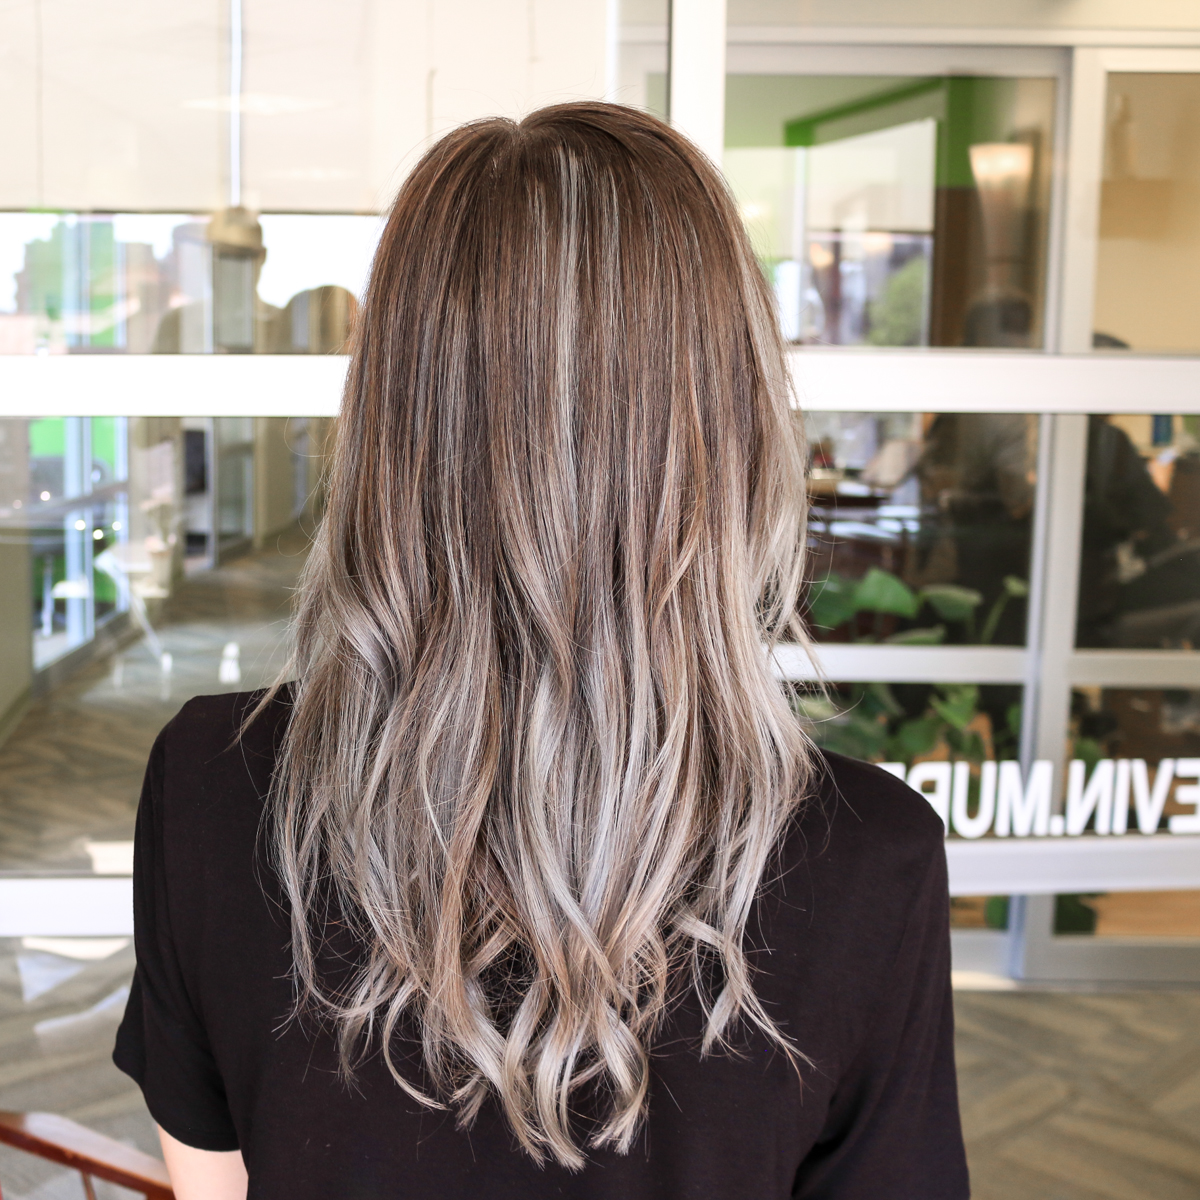 How to get Ashy Grey Hair - Q&A with a Professional Stylist